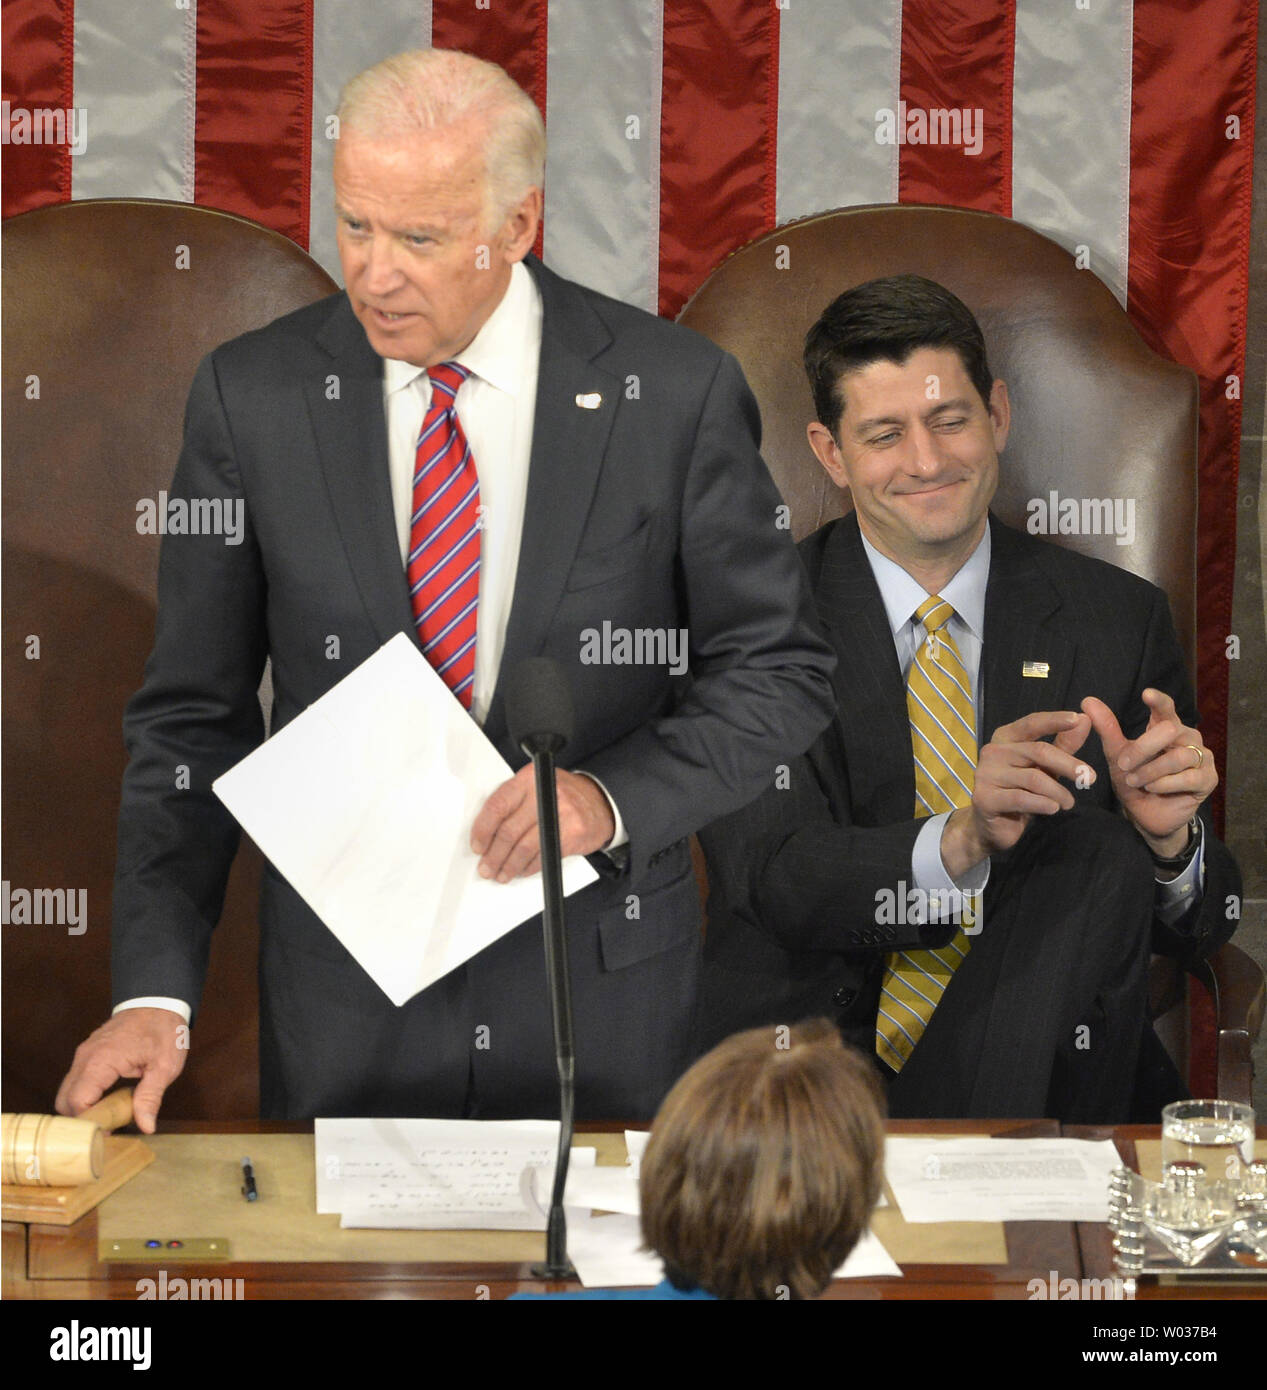 Speaker Paul Ryan (R-WI), (R), gestures during the vote counting for Wisconsin as Vice President Joe Biden presides over the procedure to count and validate the votes of the Electoral College on the floor of the House at the U.S. Capitol, on January 6, 2017, in Washington, D.C. The procedure, established by the Constitution, finalized Donald J. Trump and Mike Pence as the president and vice president. Photo by Mike Theiler/UPI - Stock Image